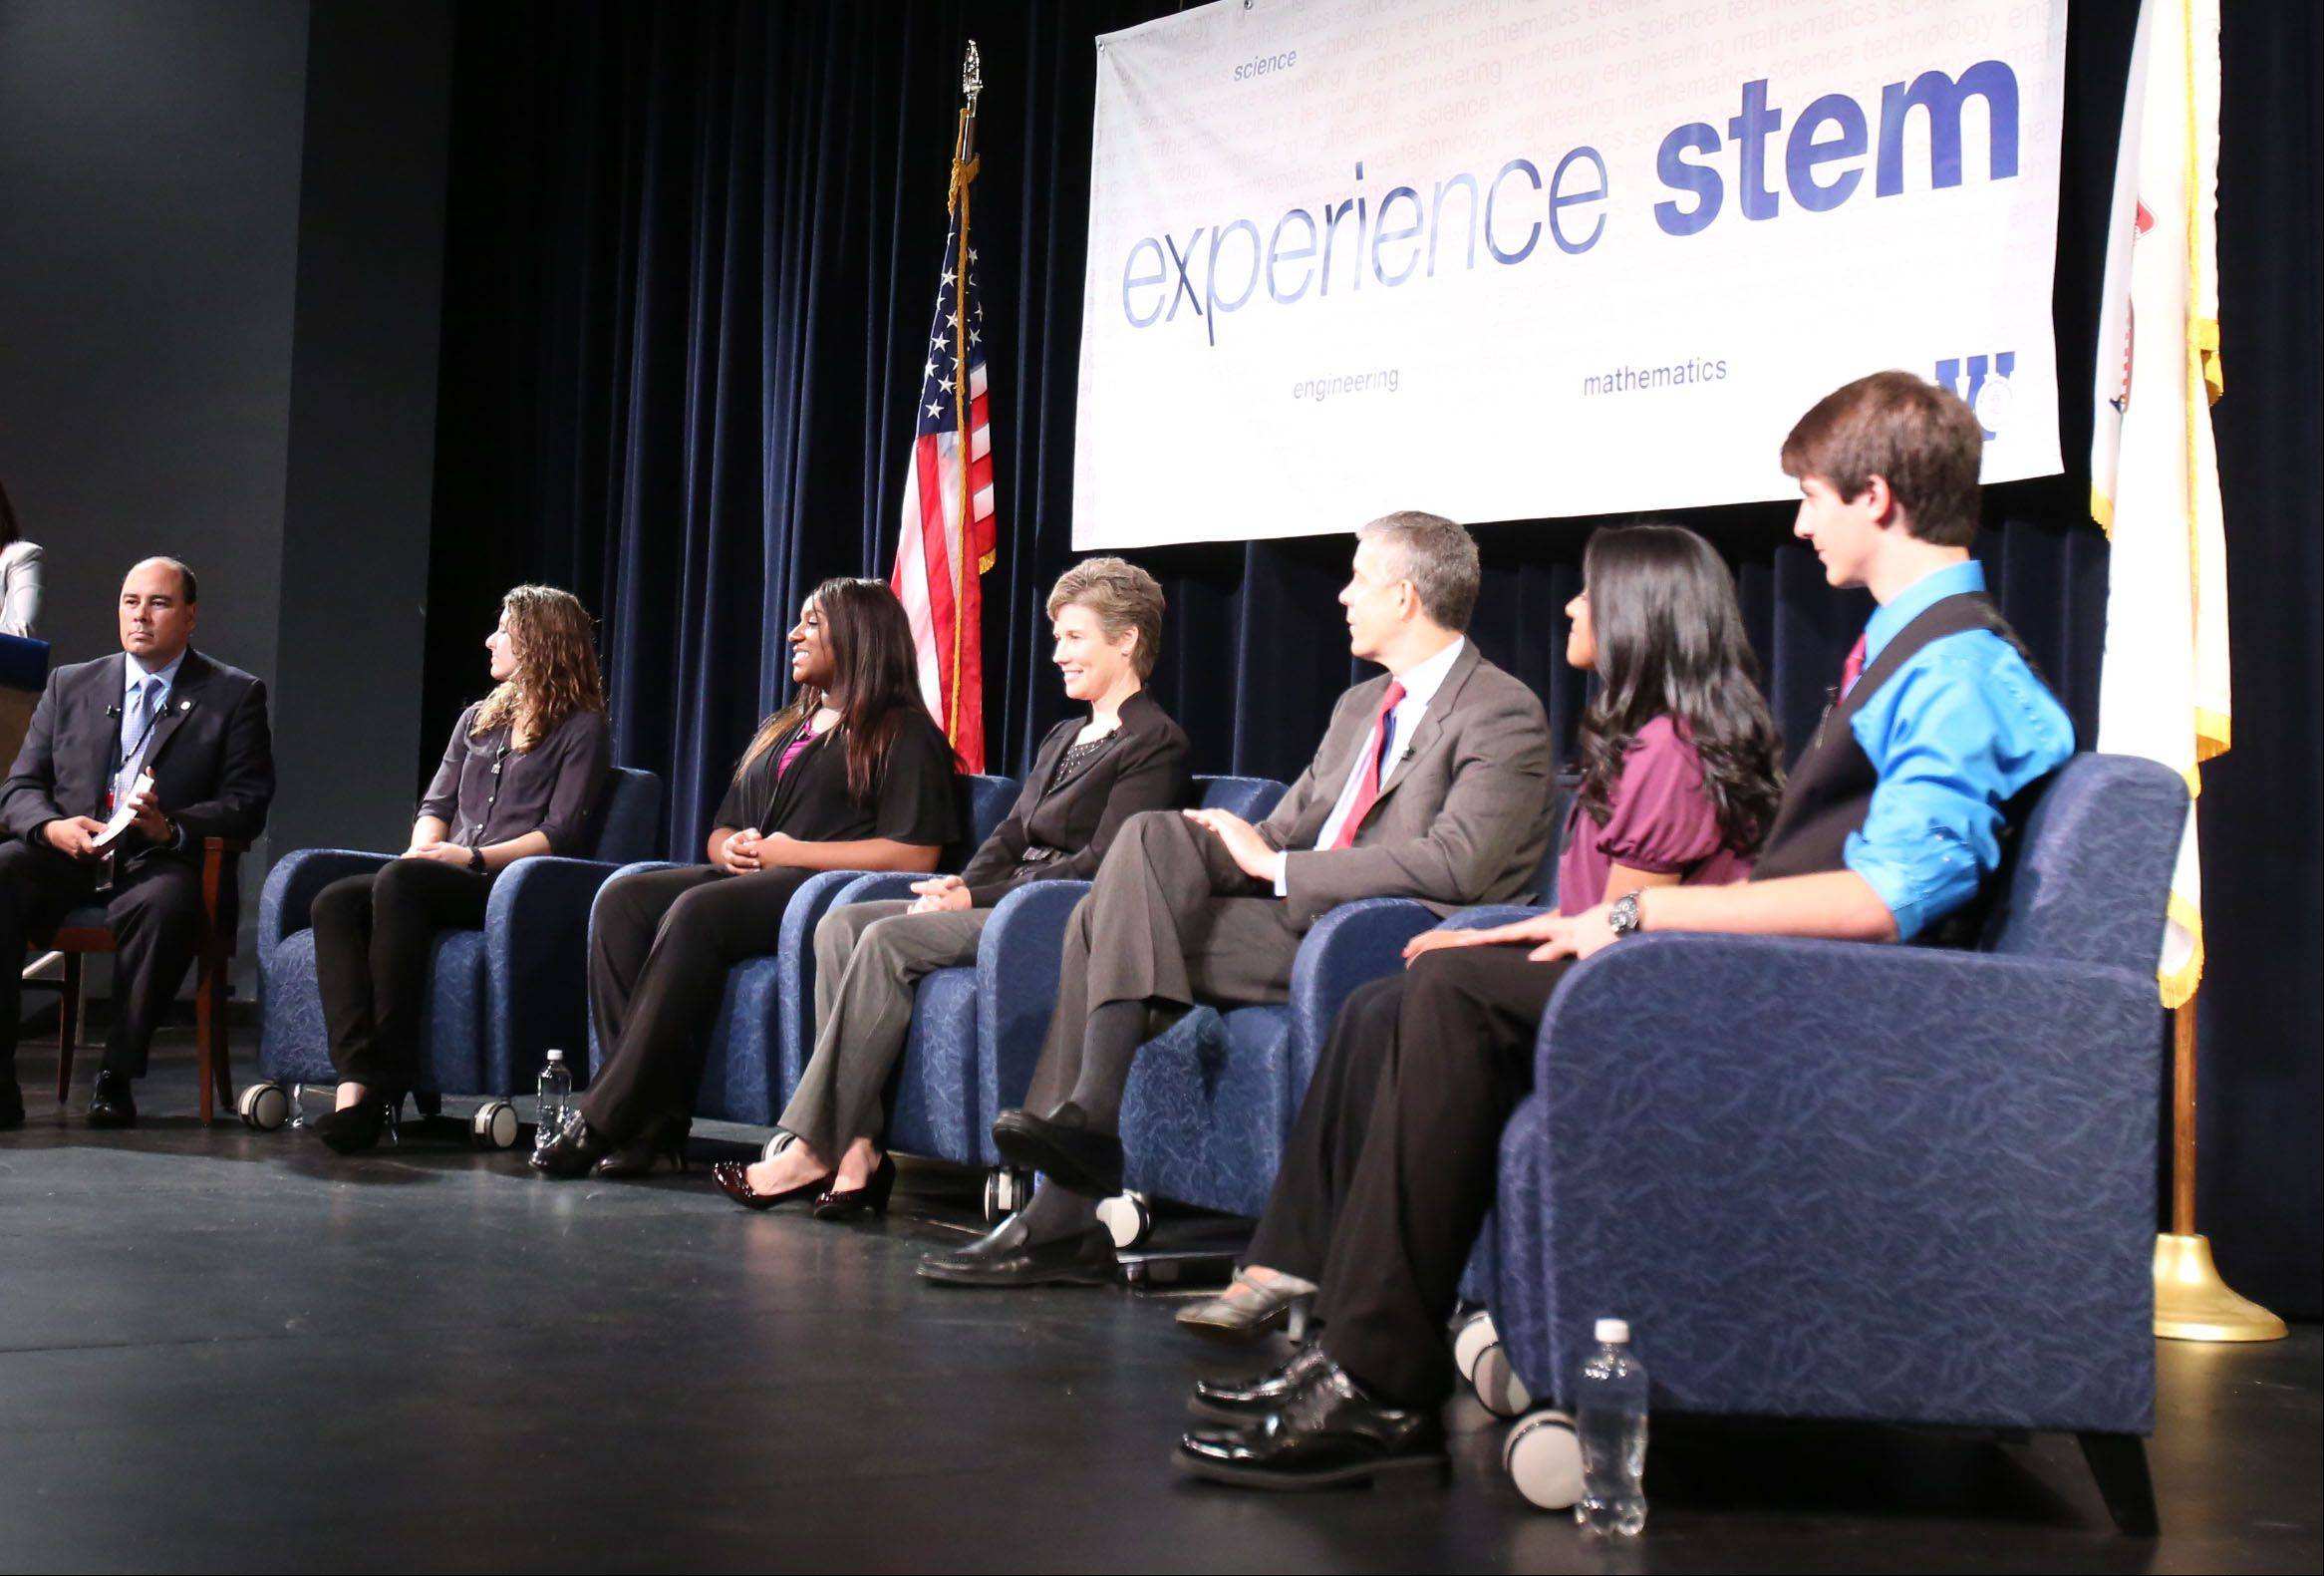 Dr. Lazaro Lopez, associate superintendent of Northwest Suburban High School District 214, speaks during a panel discussion on science, technology, engineering, and mathematics education at Wheeling High School with Secretary of Education Arne Duncan.